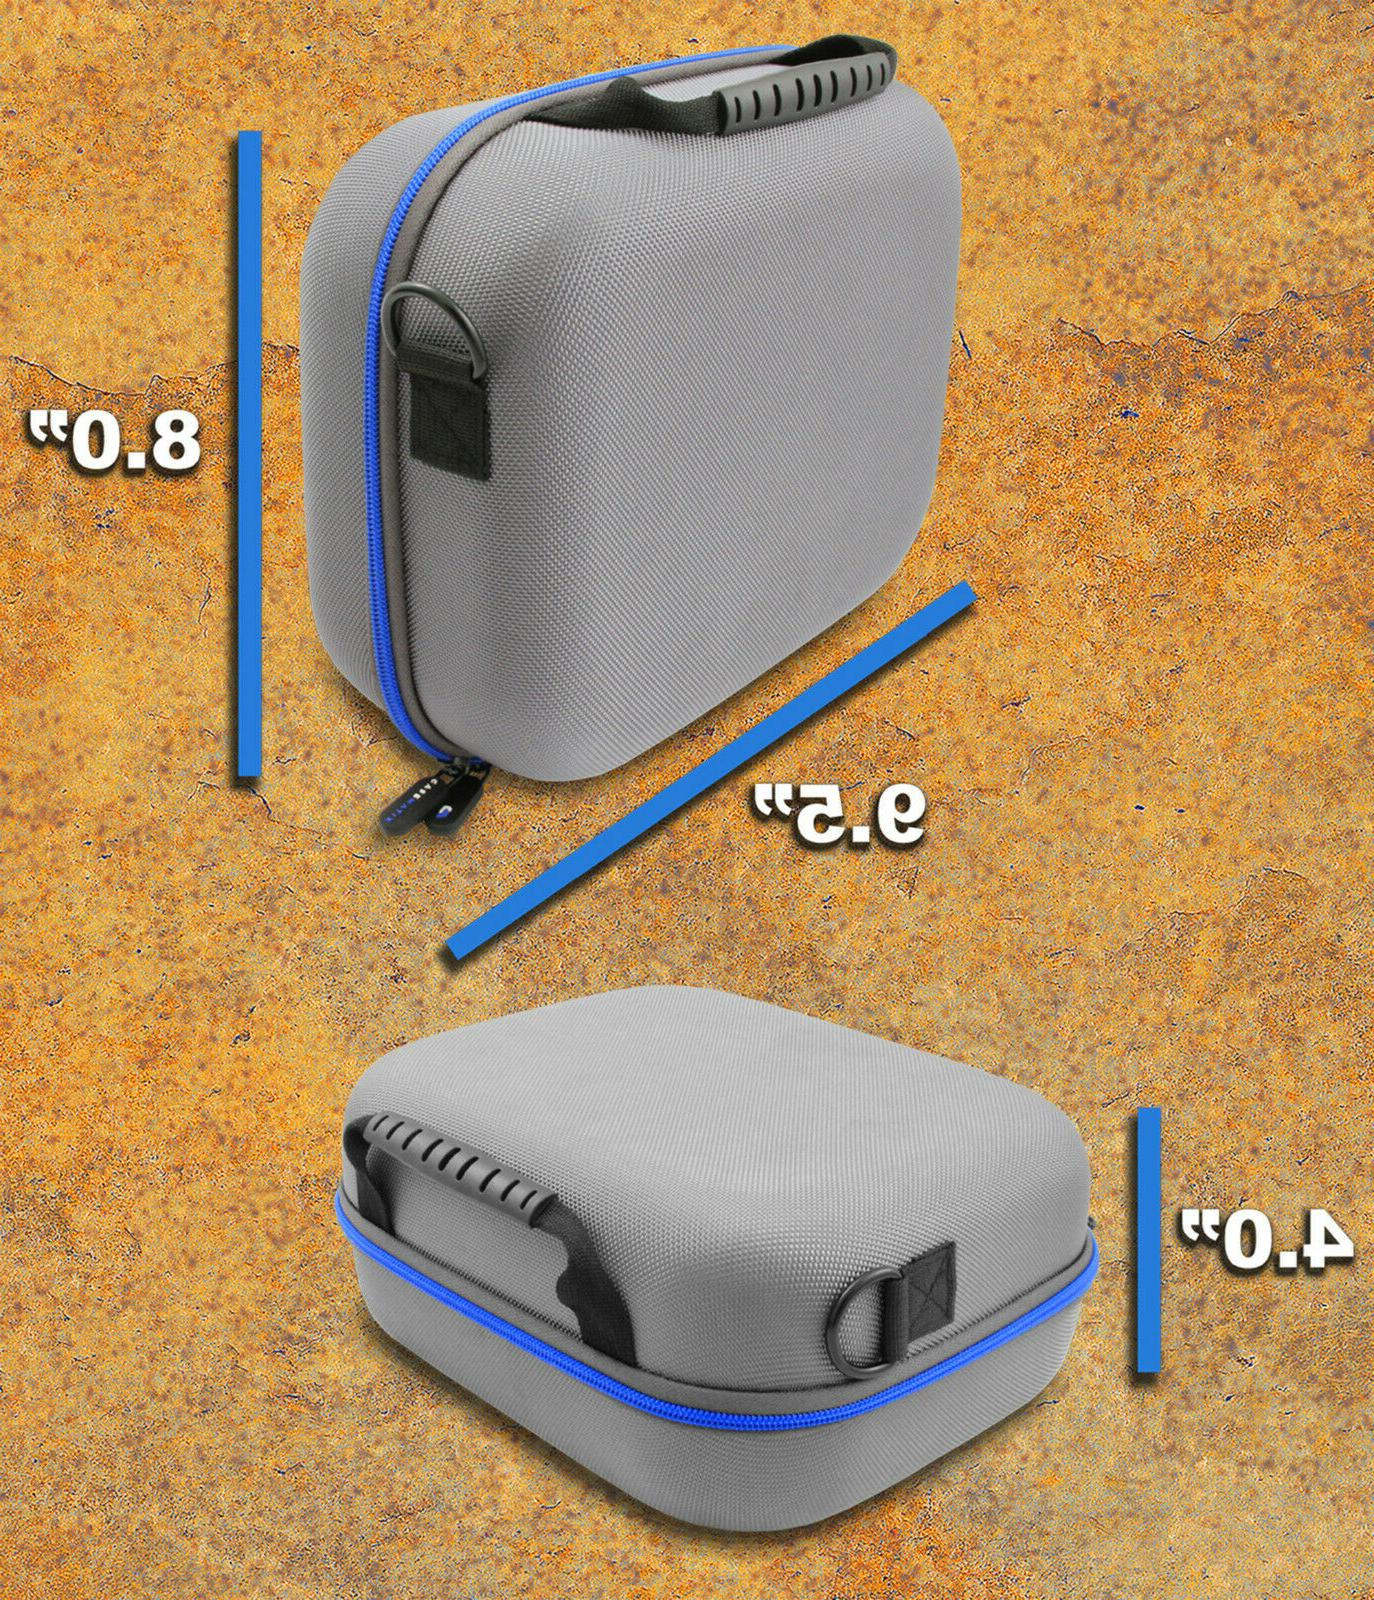 Portable Battery Bank fits Halo mWh